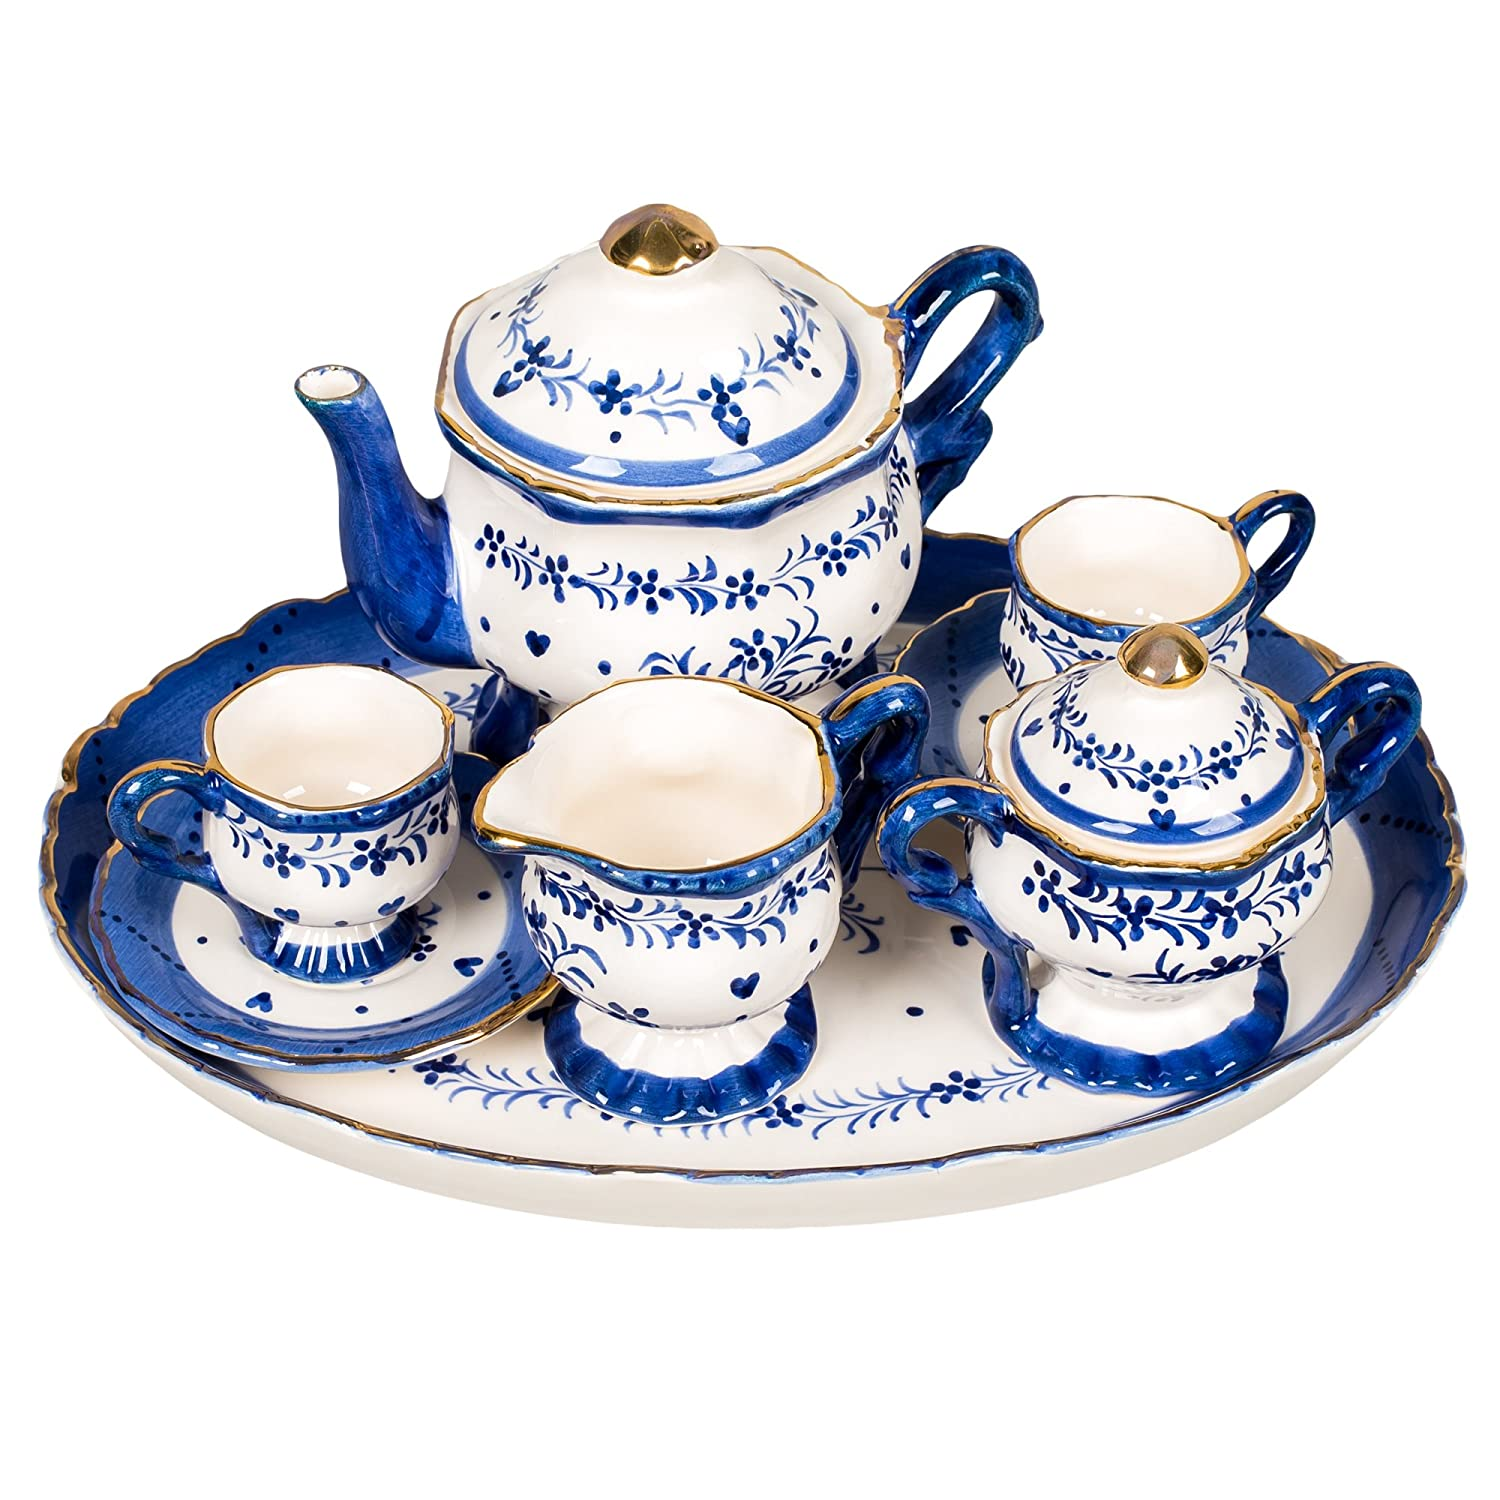 Blue and White Floral Design White Porcelain Children's Tea Party Set Sea Island Imports Inc.